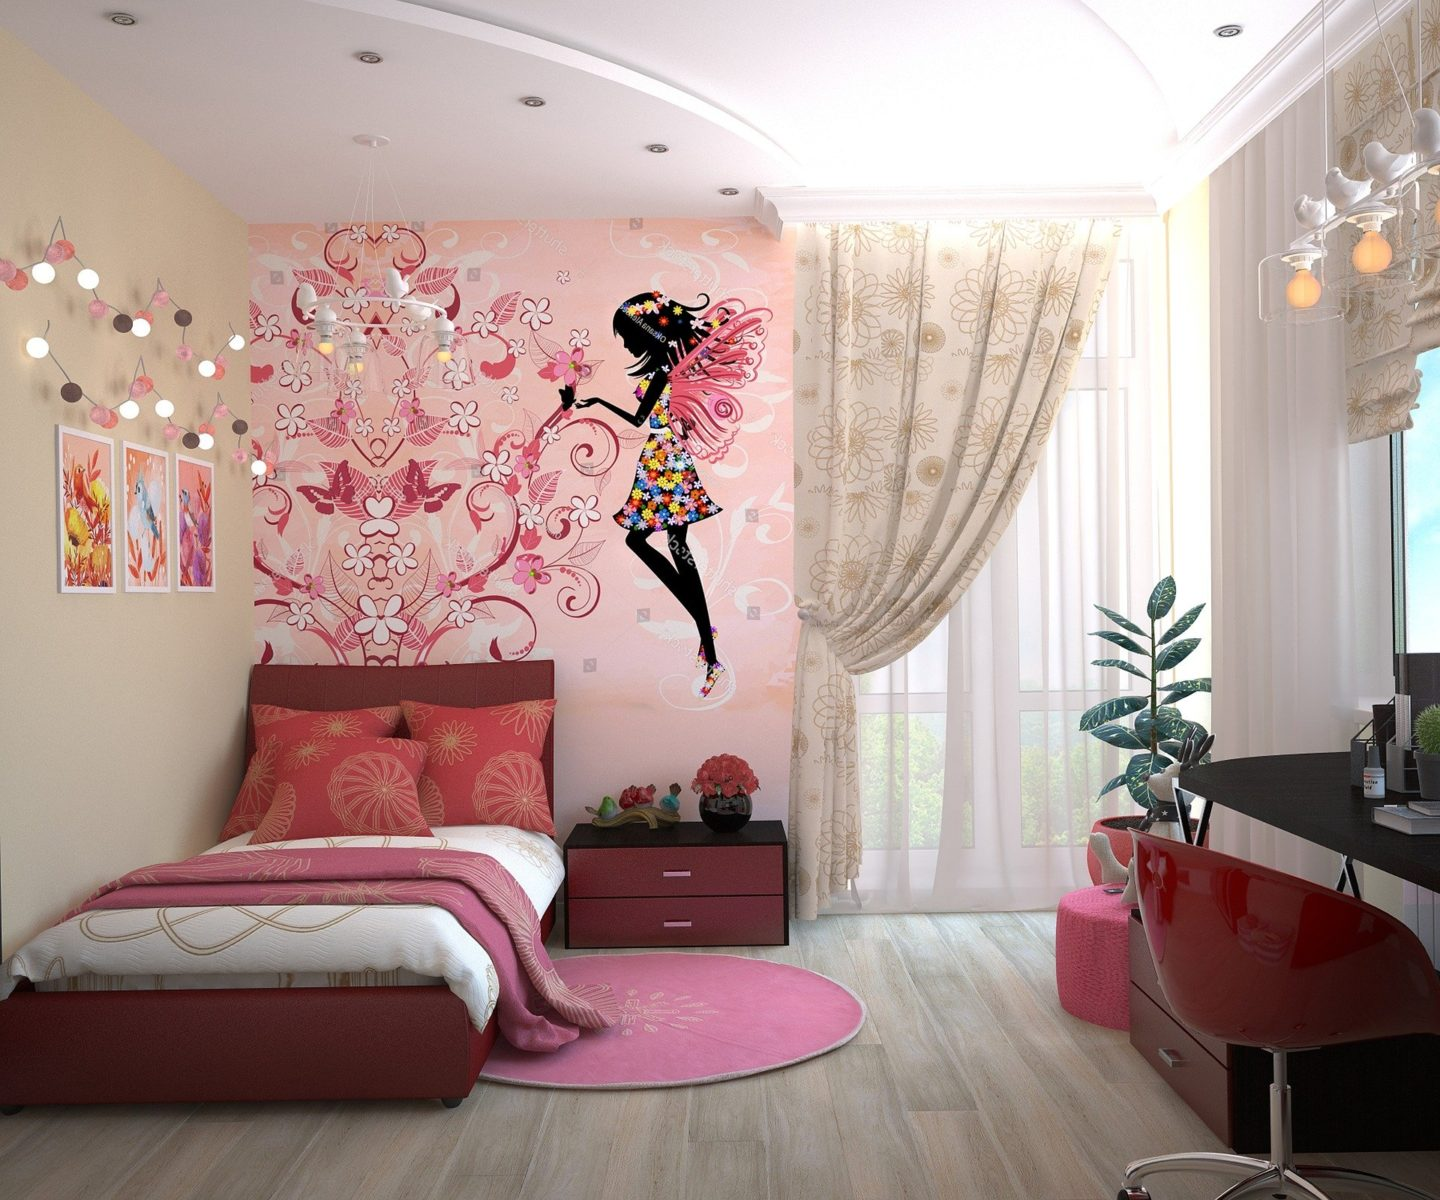 Creating A Bedroom Your Child Will Love